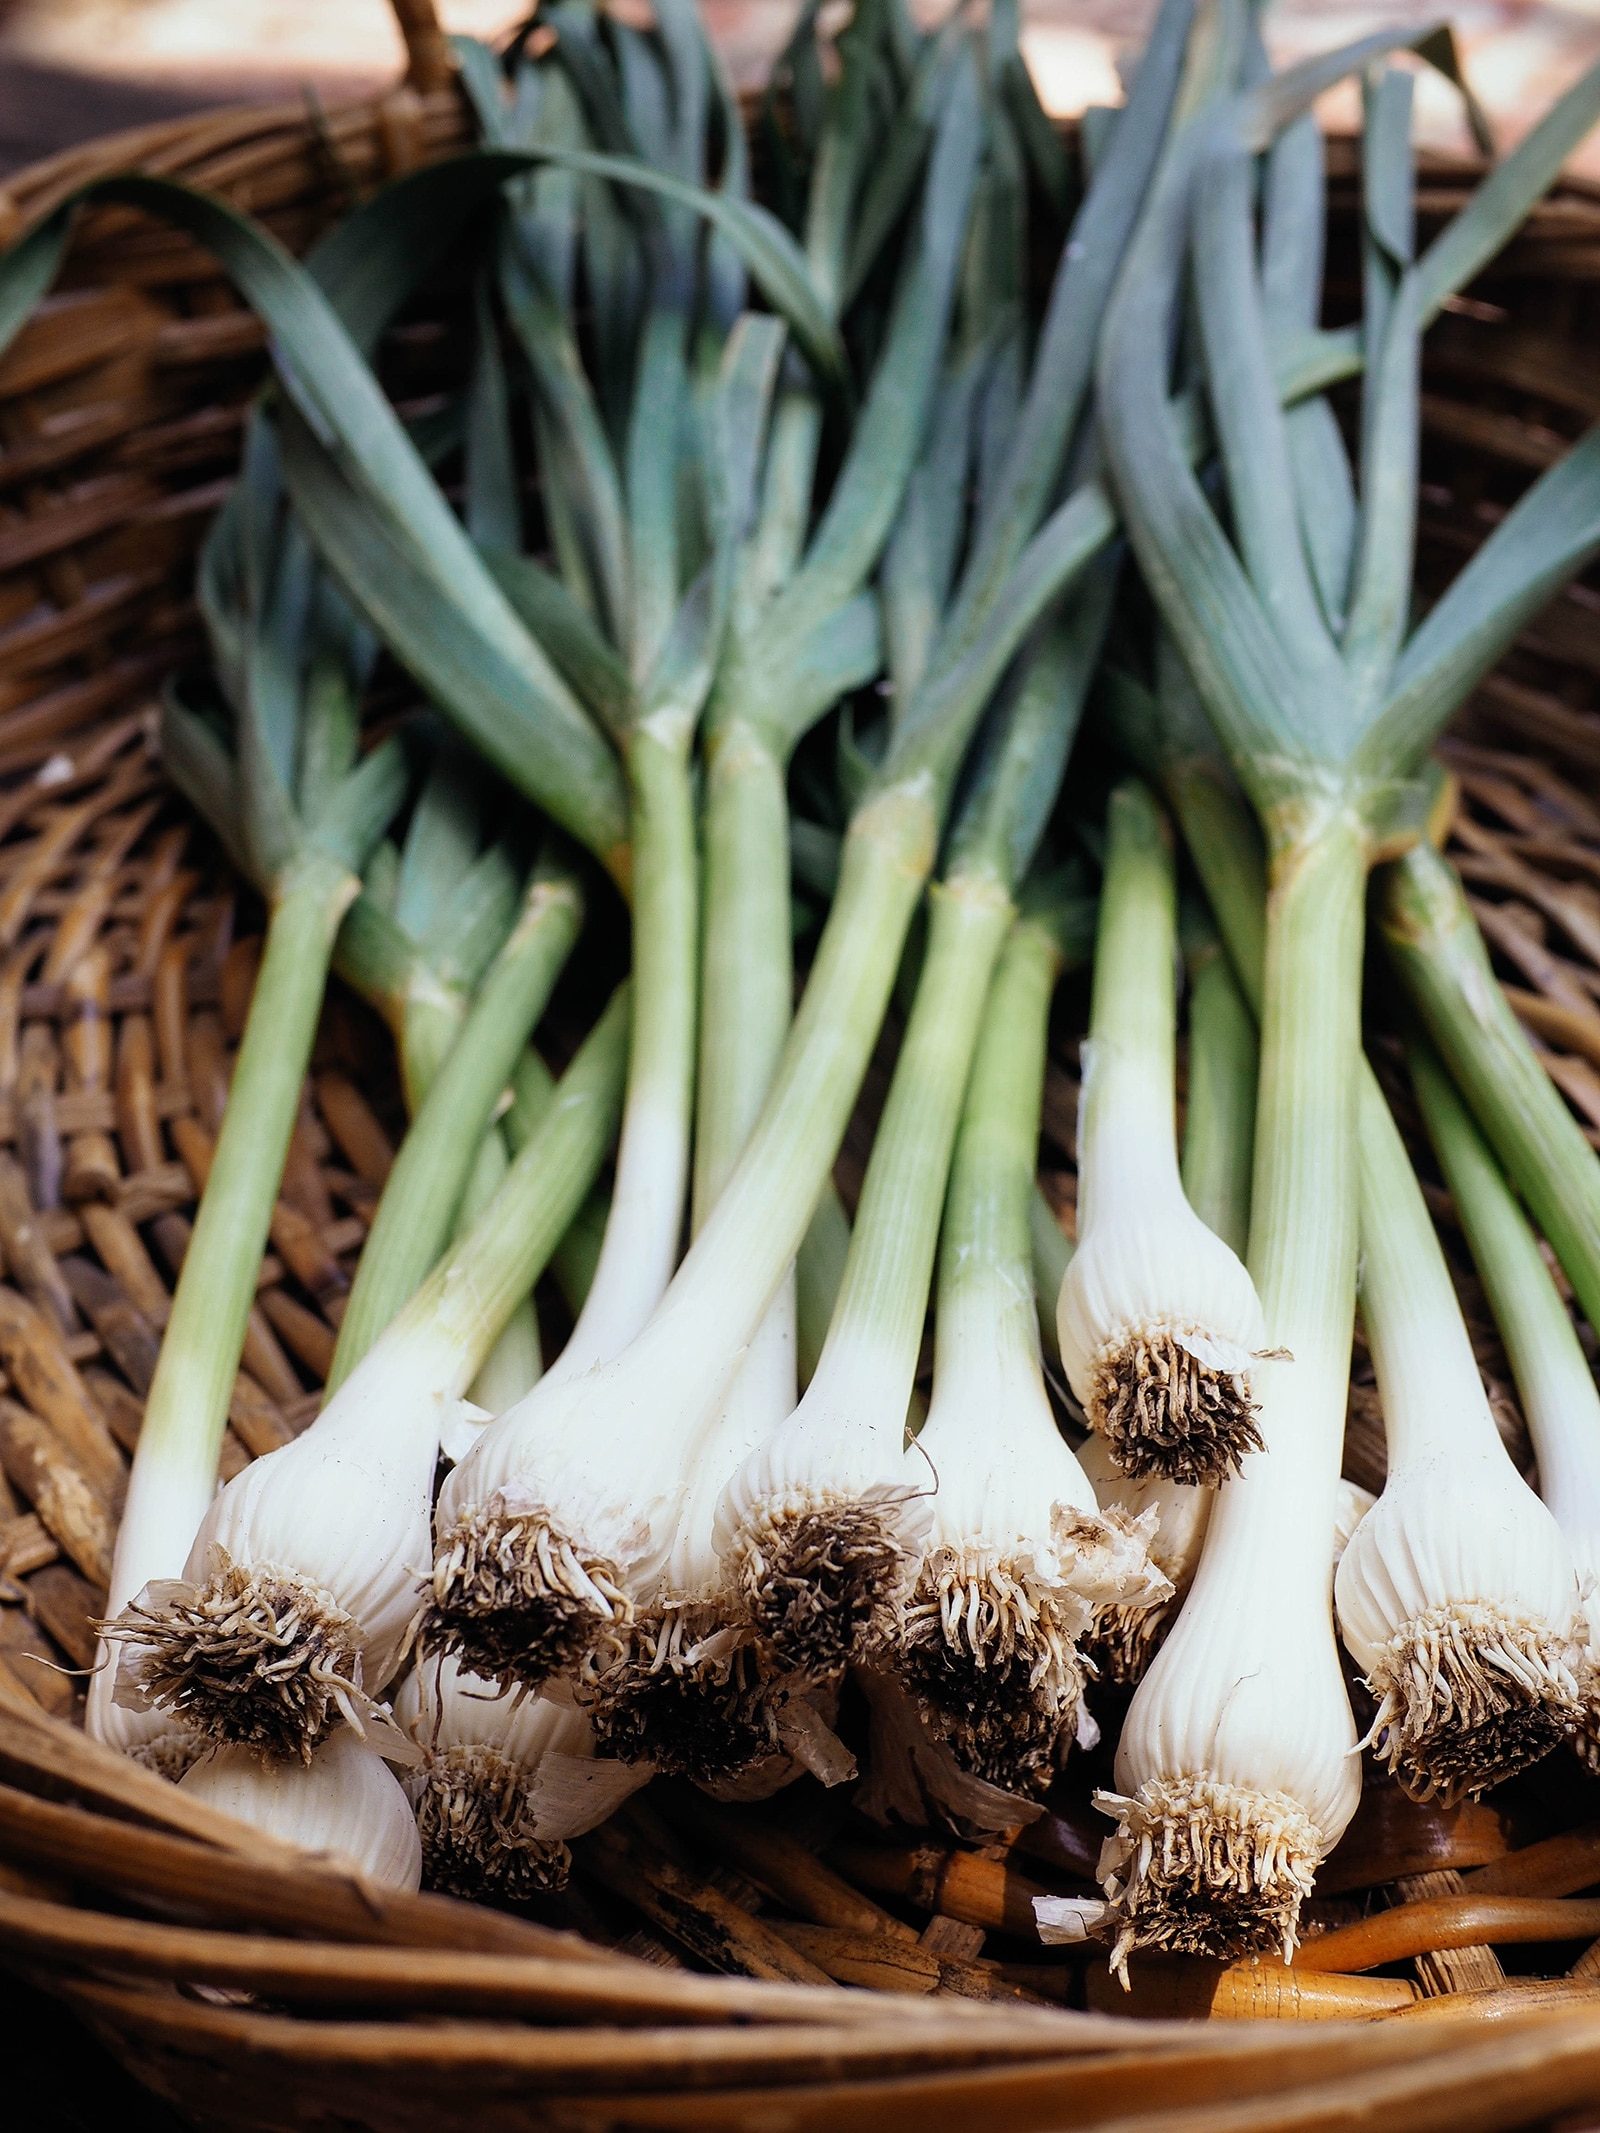 Undivided bulbs on a homegrown harvest of spring-planted green garlic